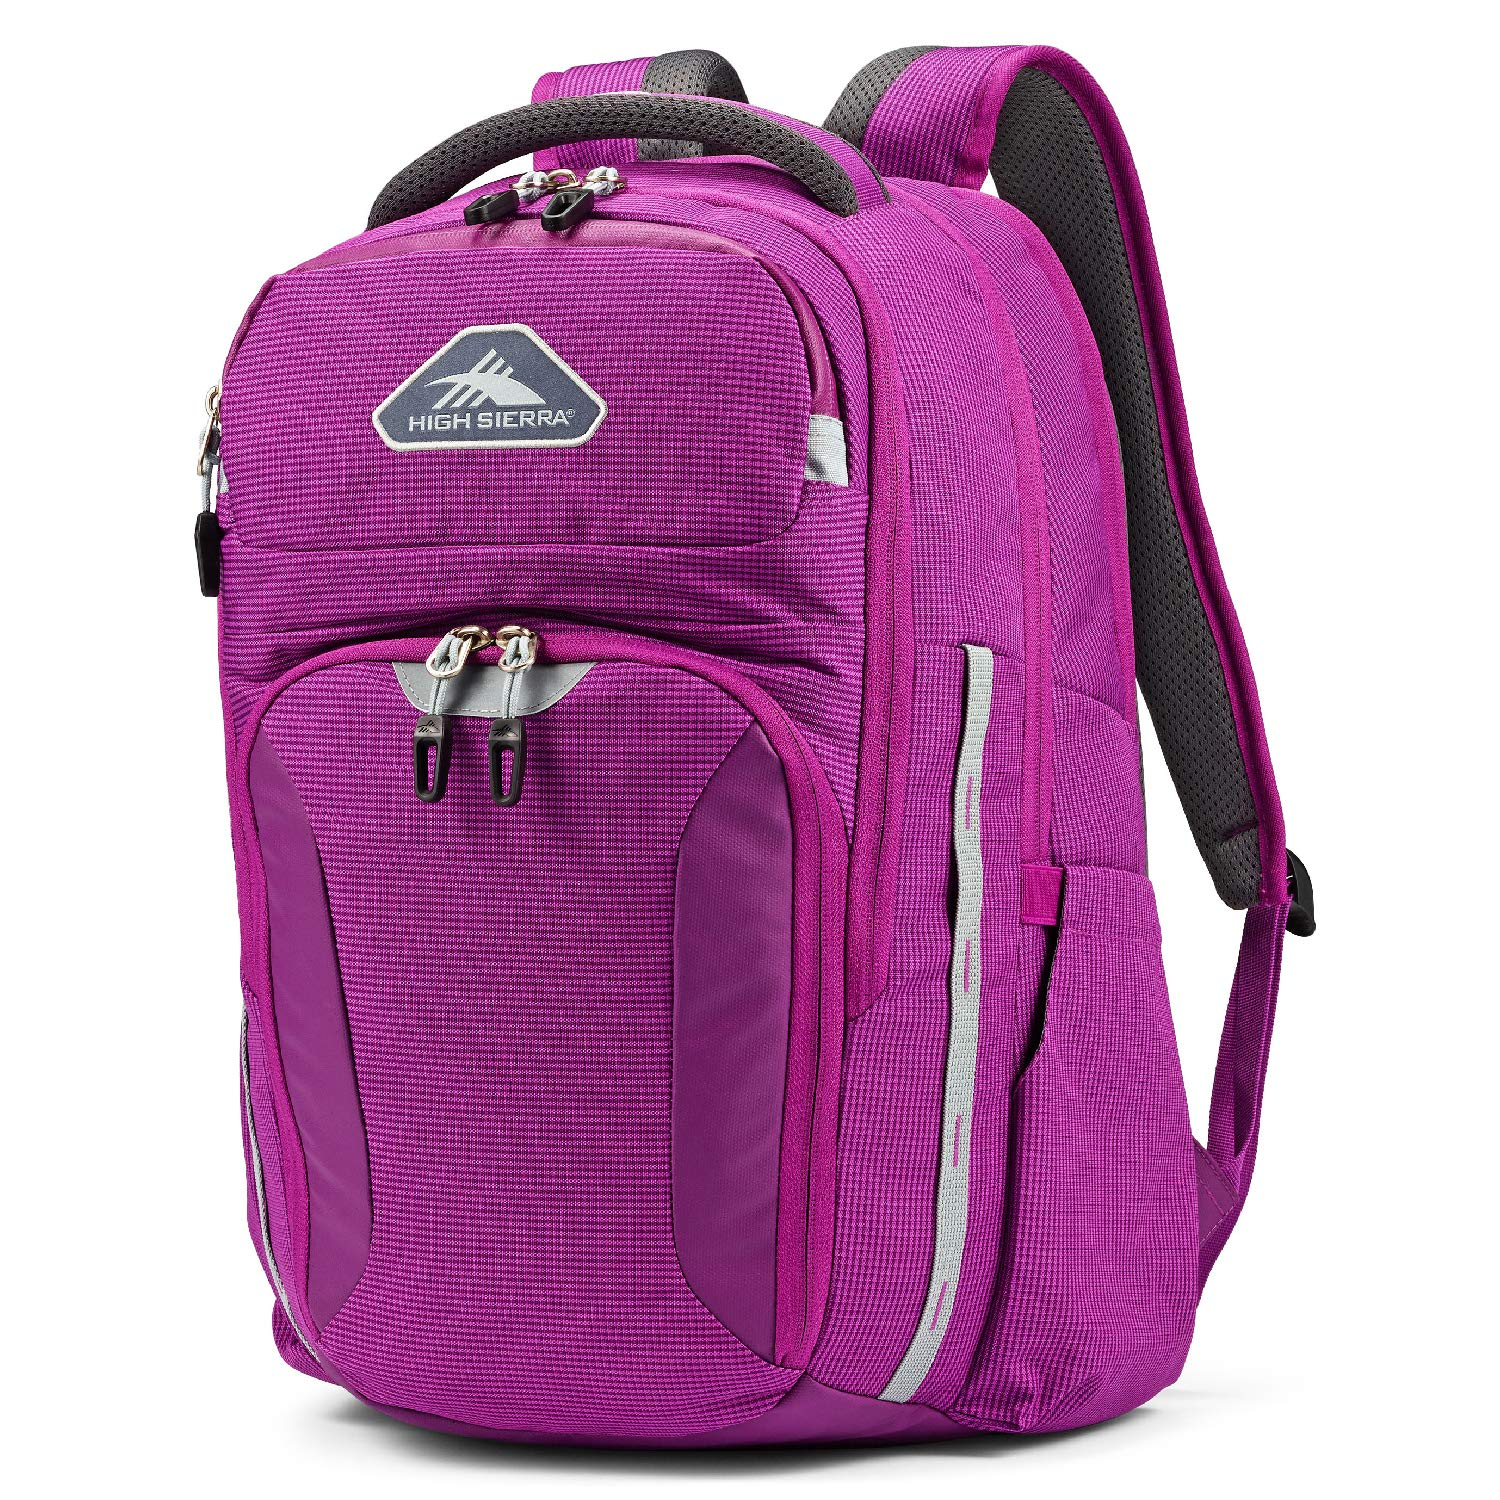 a022fe946d53 High Sierra Unisex Autry Backpack, 15-inch Laptop Backpack, 17-inch Laptop  Backpack for Men or Women